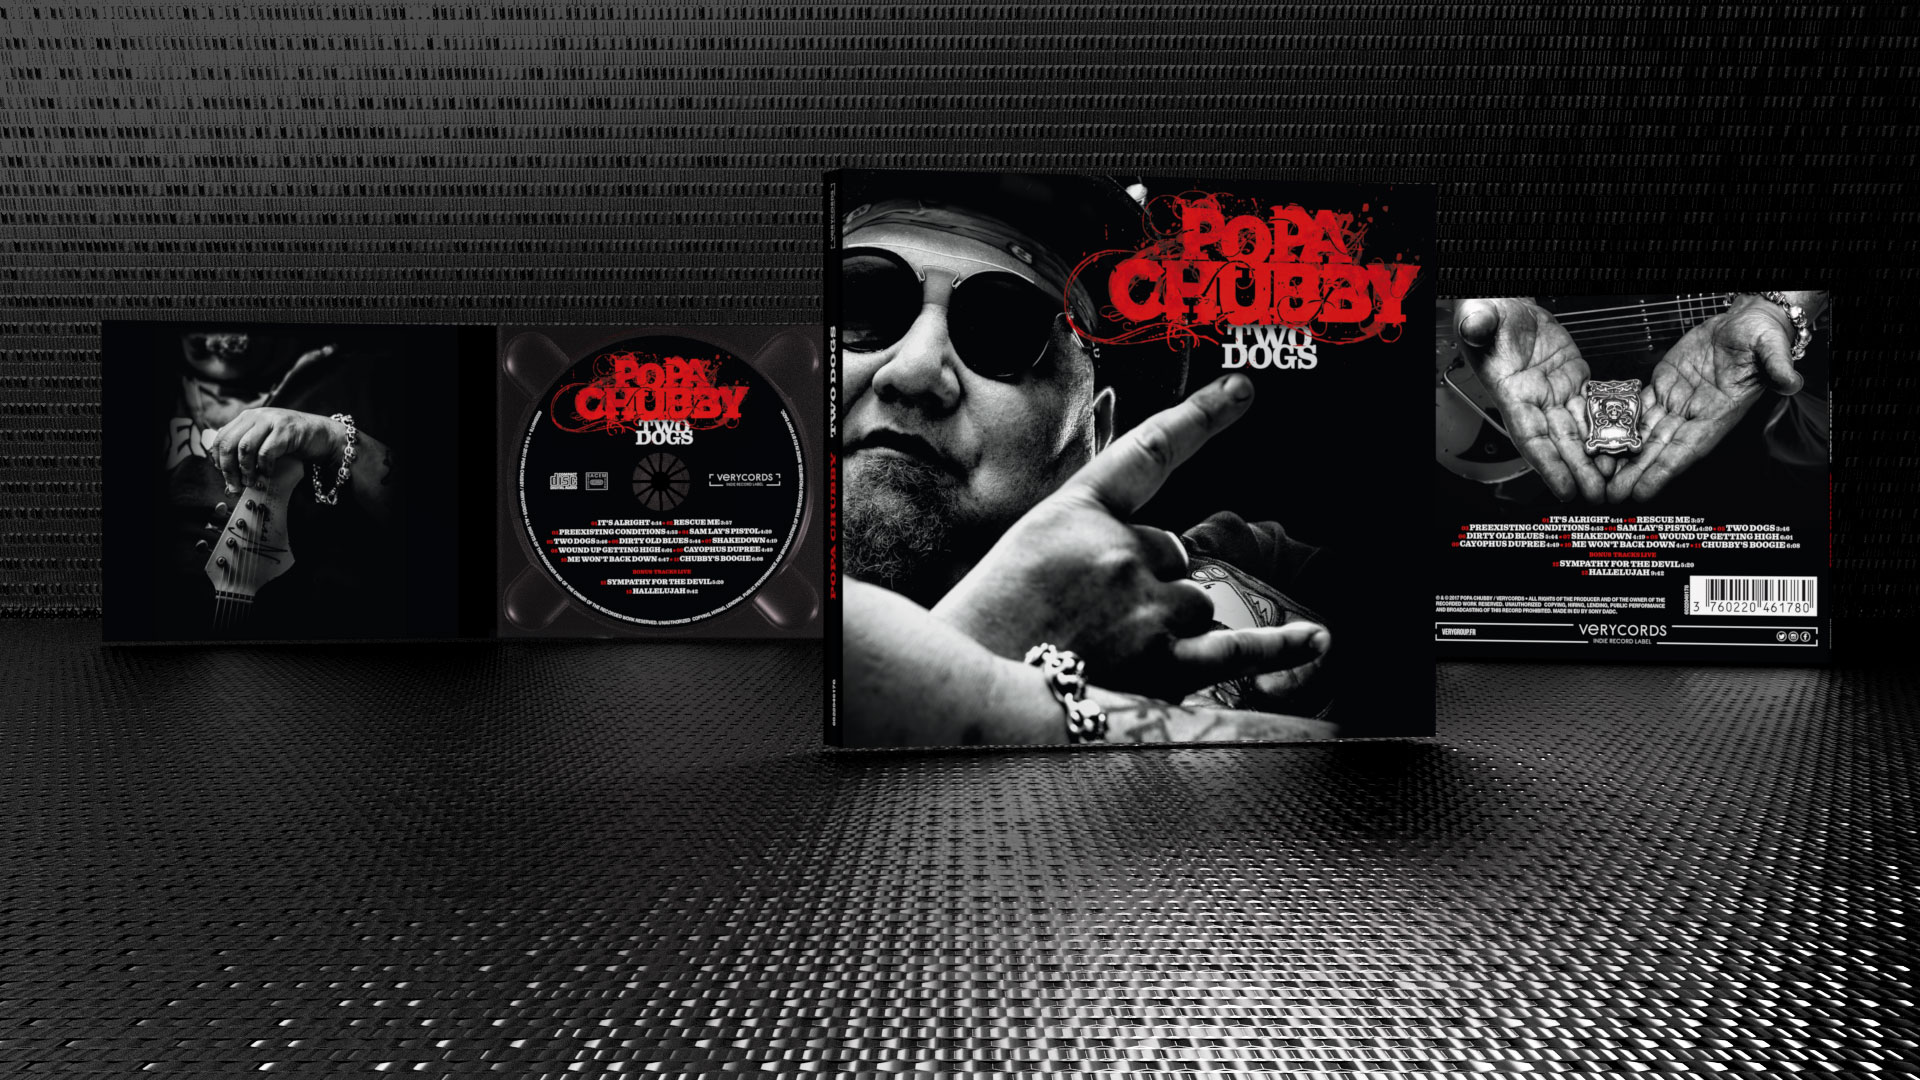 Graphic Design and typography for Popa Chubby's new album: Two Dogs. Cd, Digipack and LP. Photos by Harrison O'Brien.